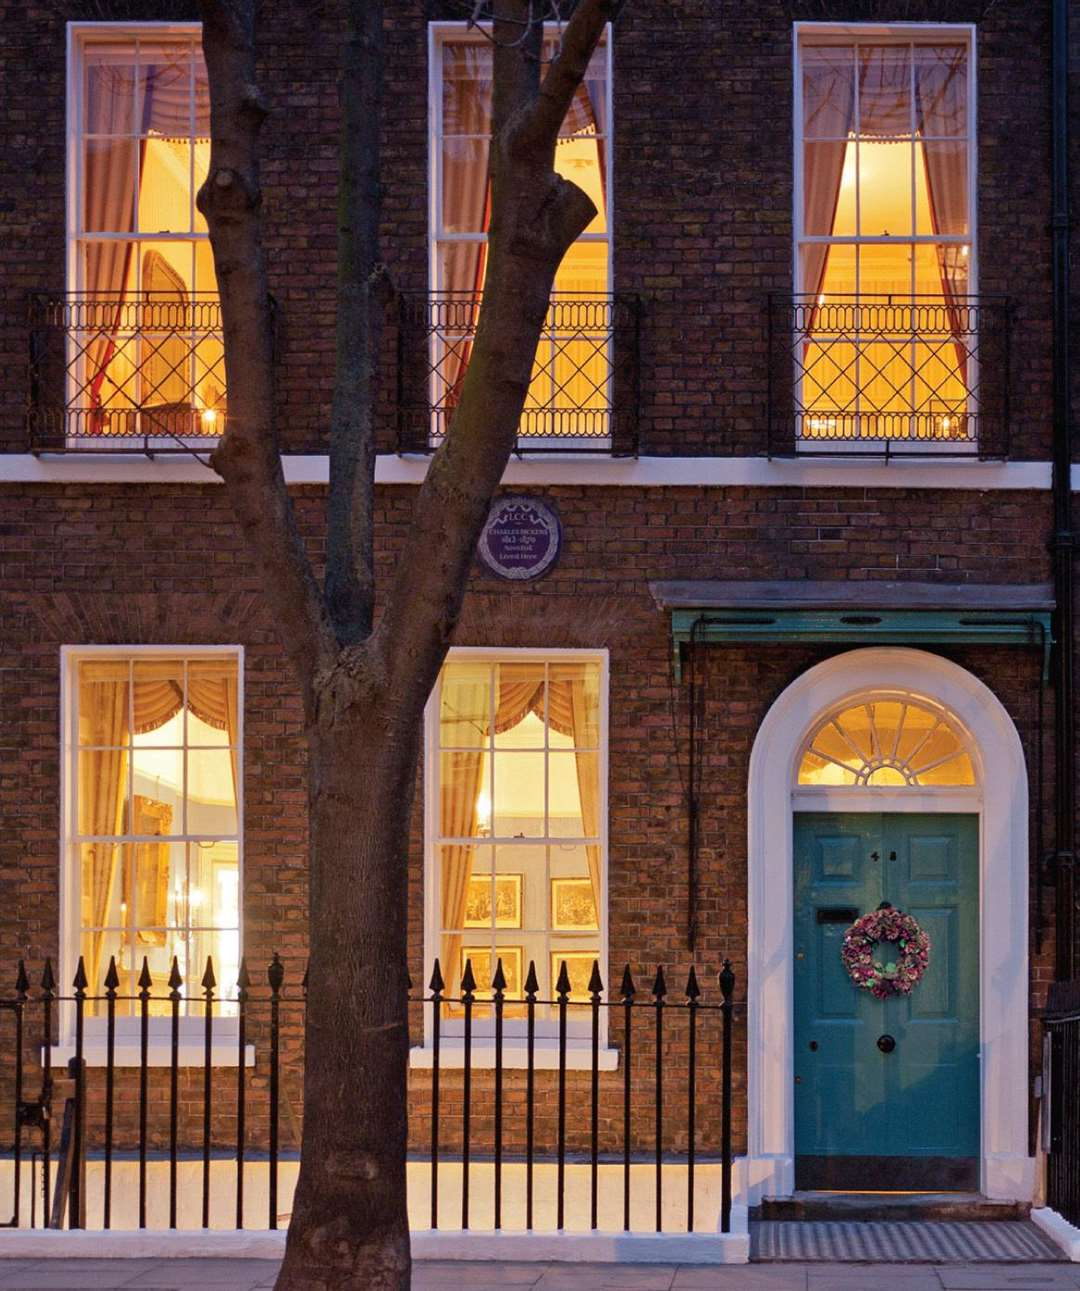 The Dickens Museum in London